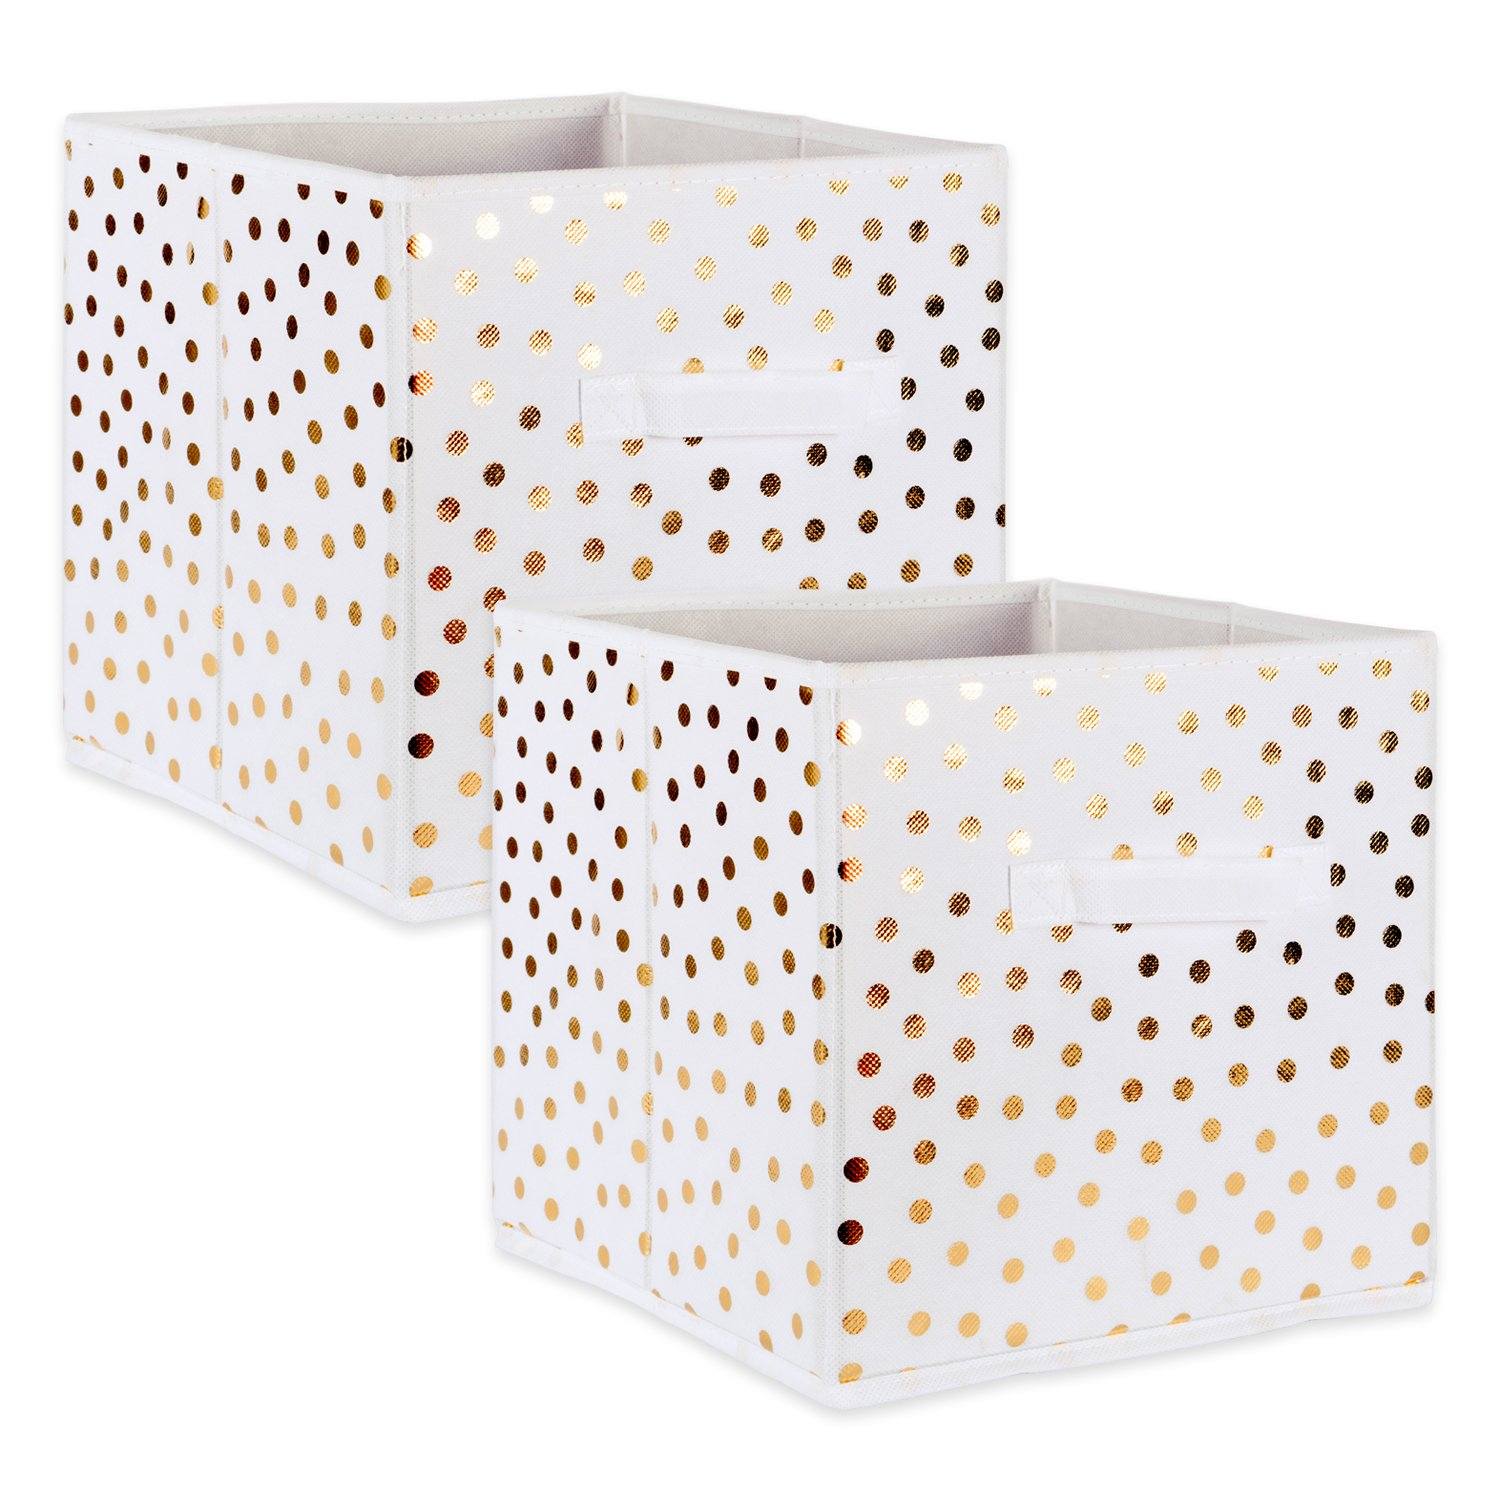 DII Fabric Storage Bins for Nursery, Offices, & Home Organization, Containers Are Made To Fit Standard Cube Organizers (13x13x13'') White with Gold Dots - Set of 2